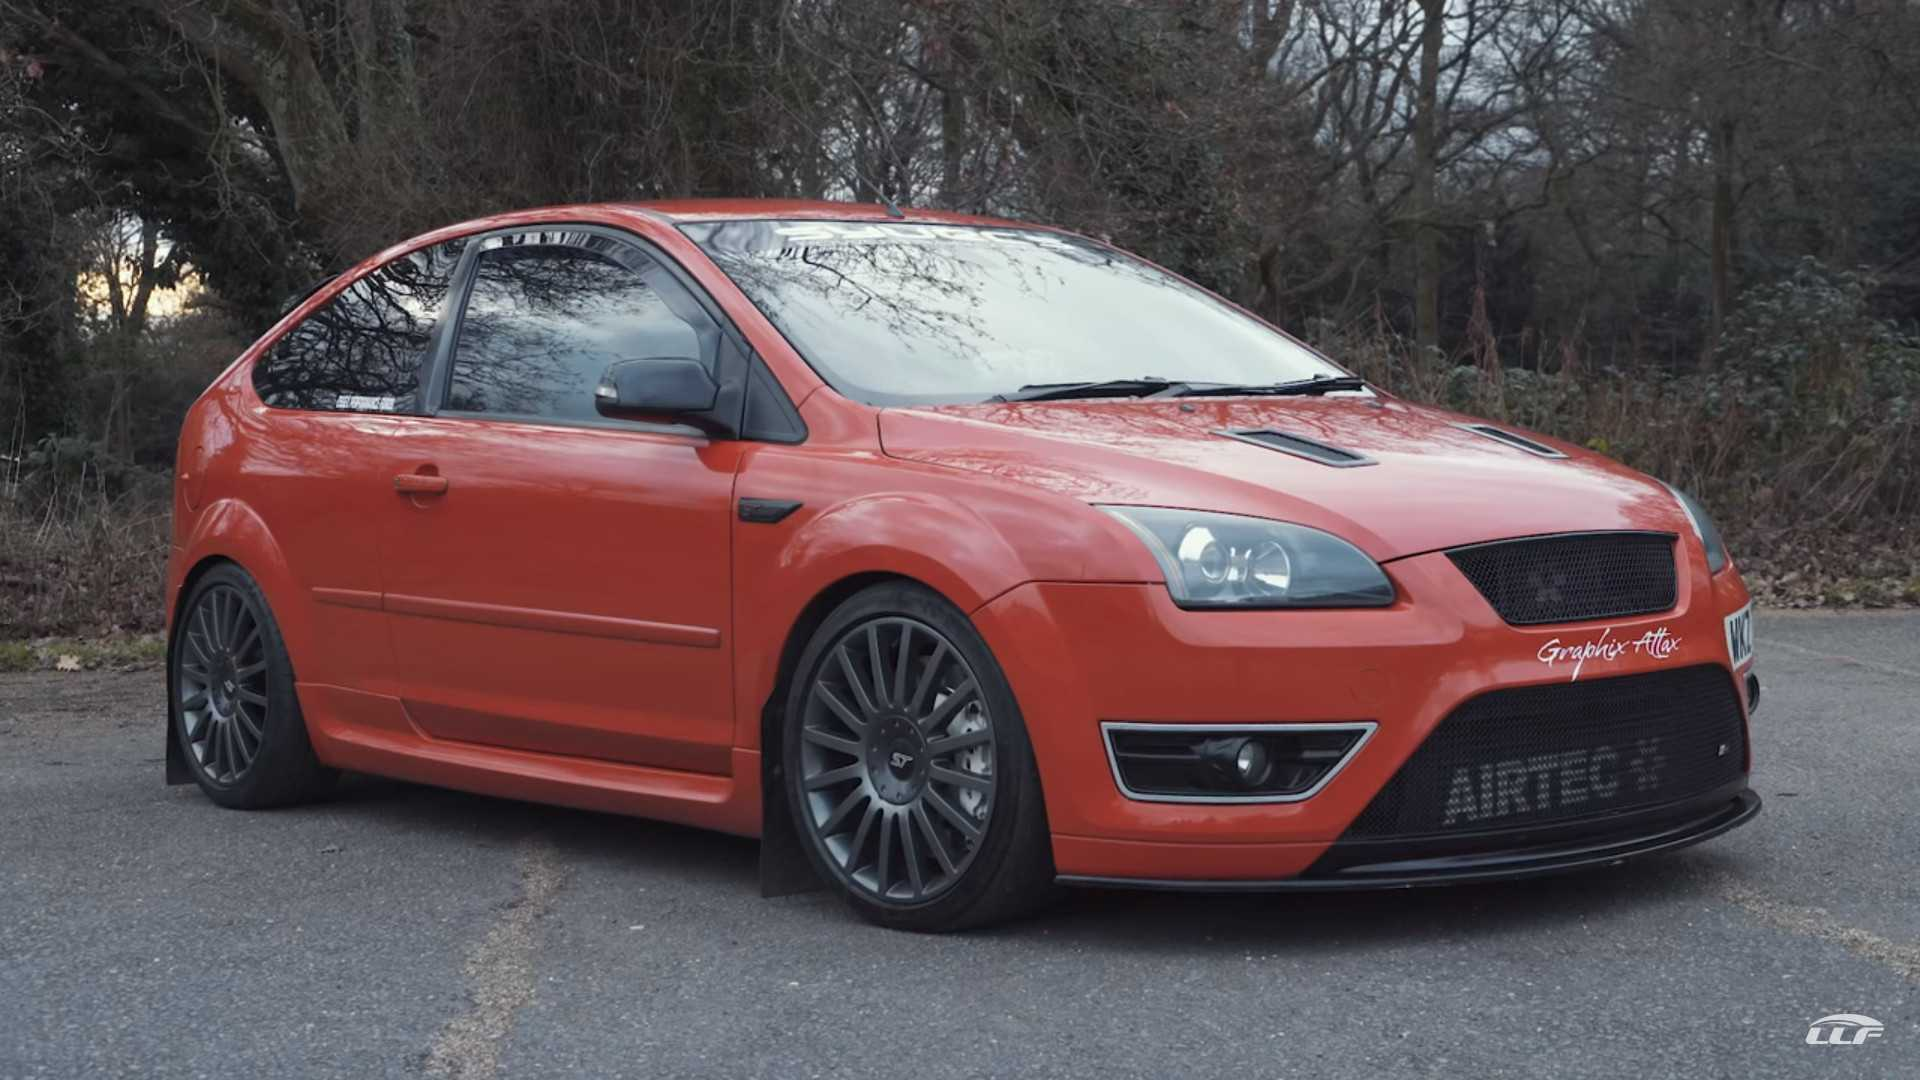 Nos Equipped 640 Horsepower Ford Focus St Is Just Bonkers